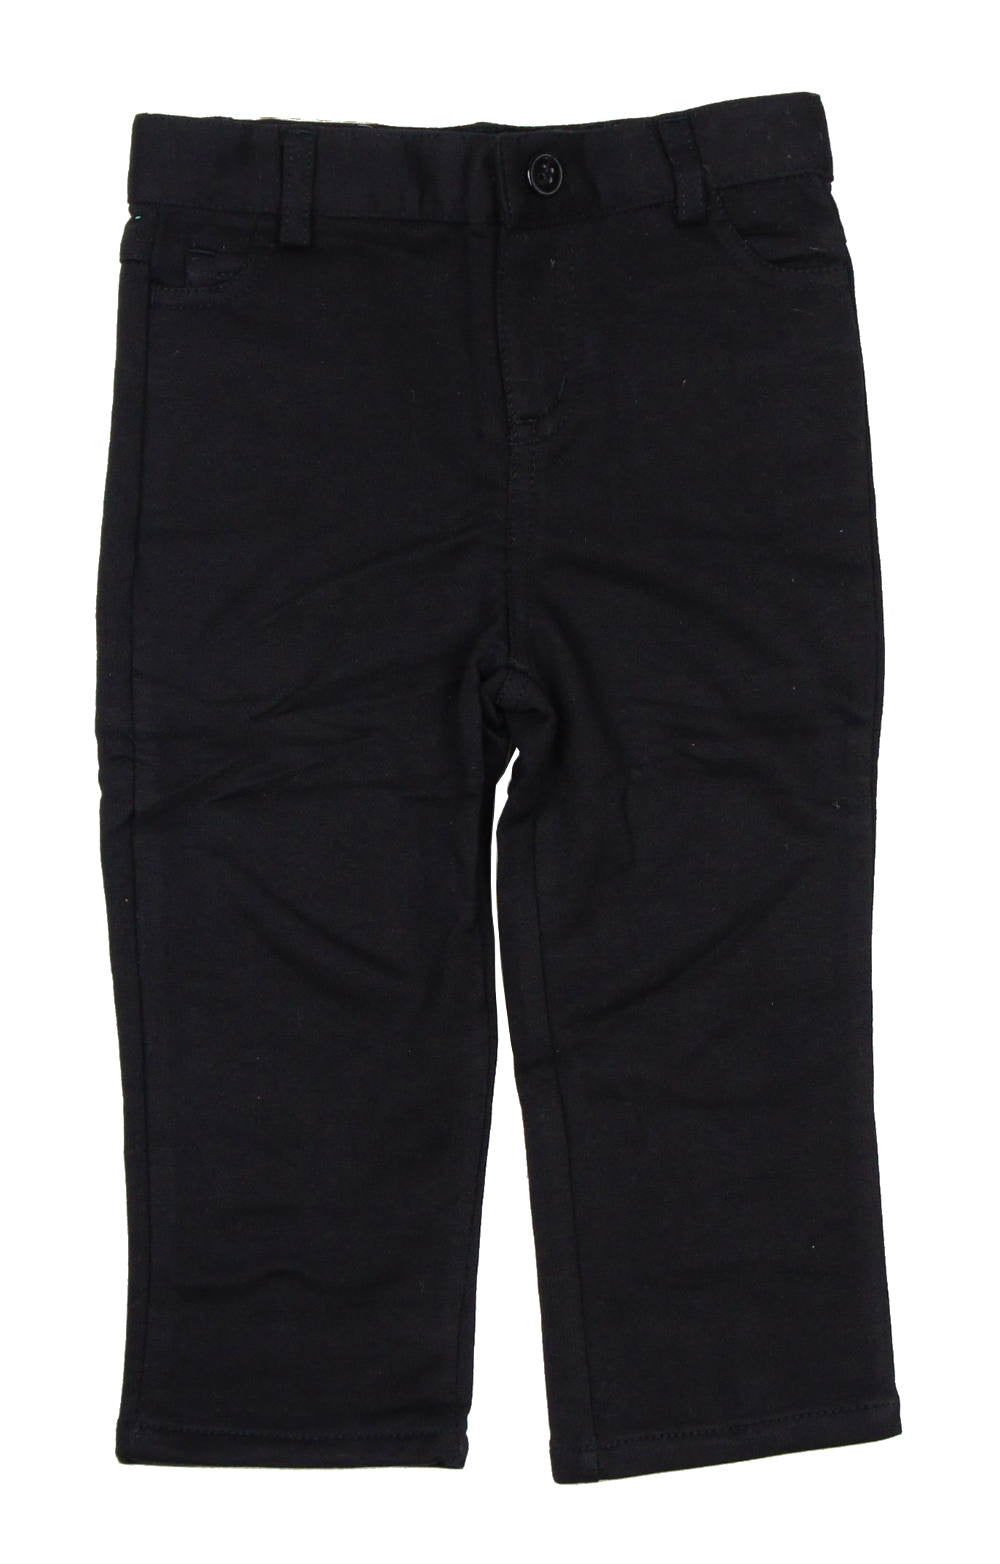 Crew Black Slim Knit Pants - Young Timers Boutique